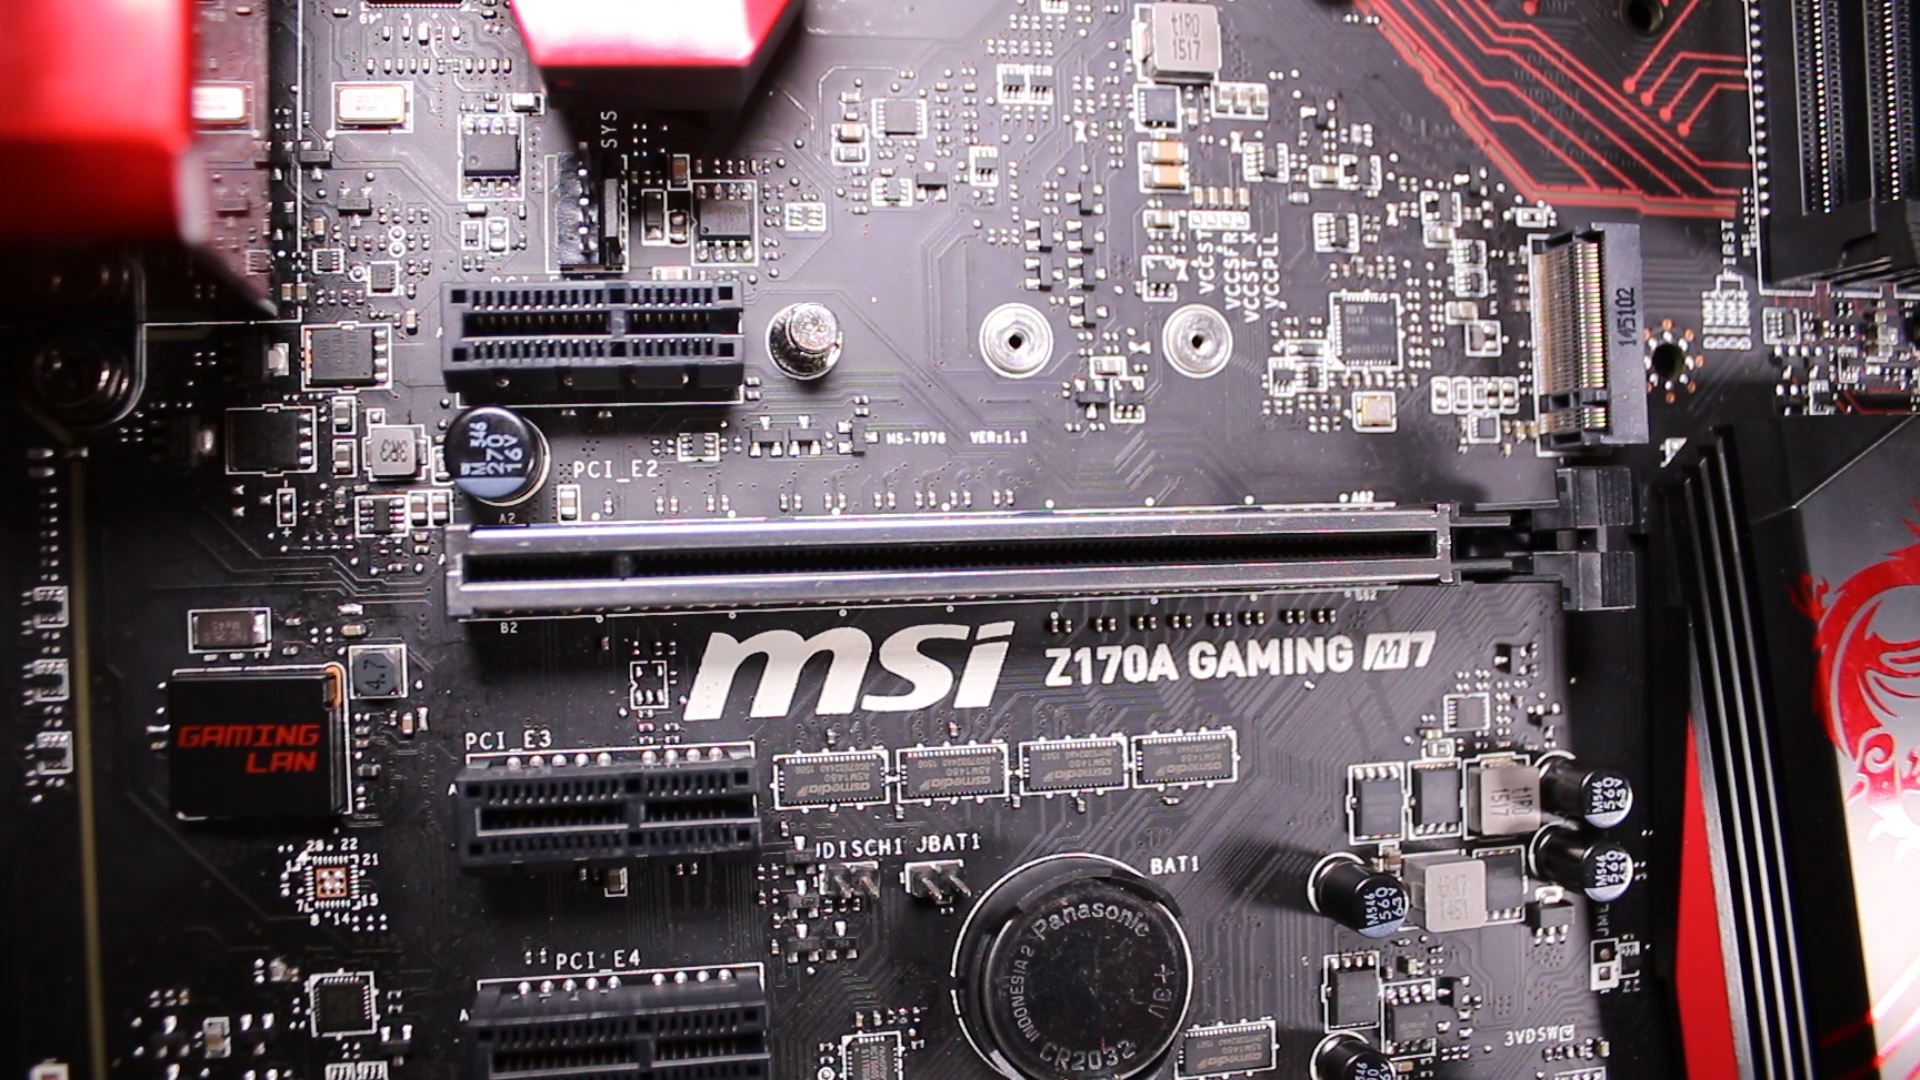 MSI Z170A Gaming M7 Motherboard Review | TechteamGB